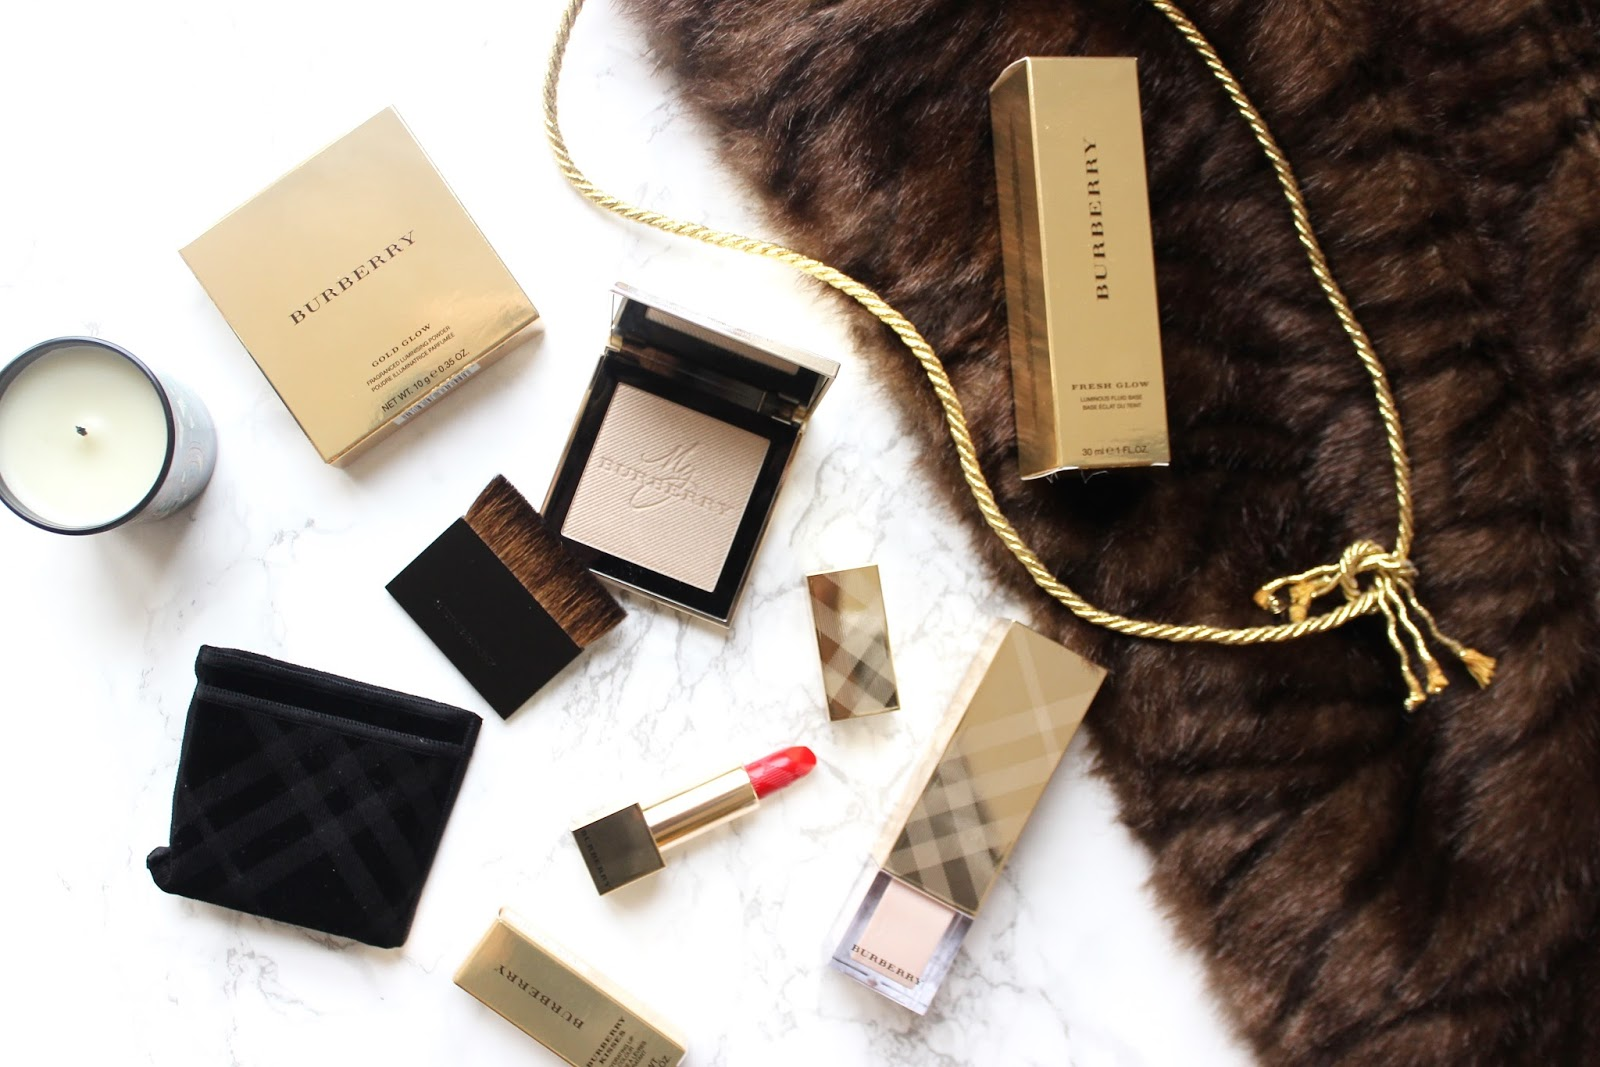 Burberry Festive Gold Collection